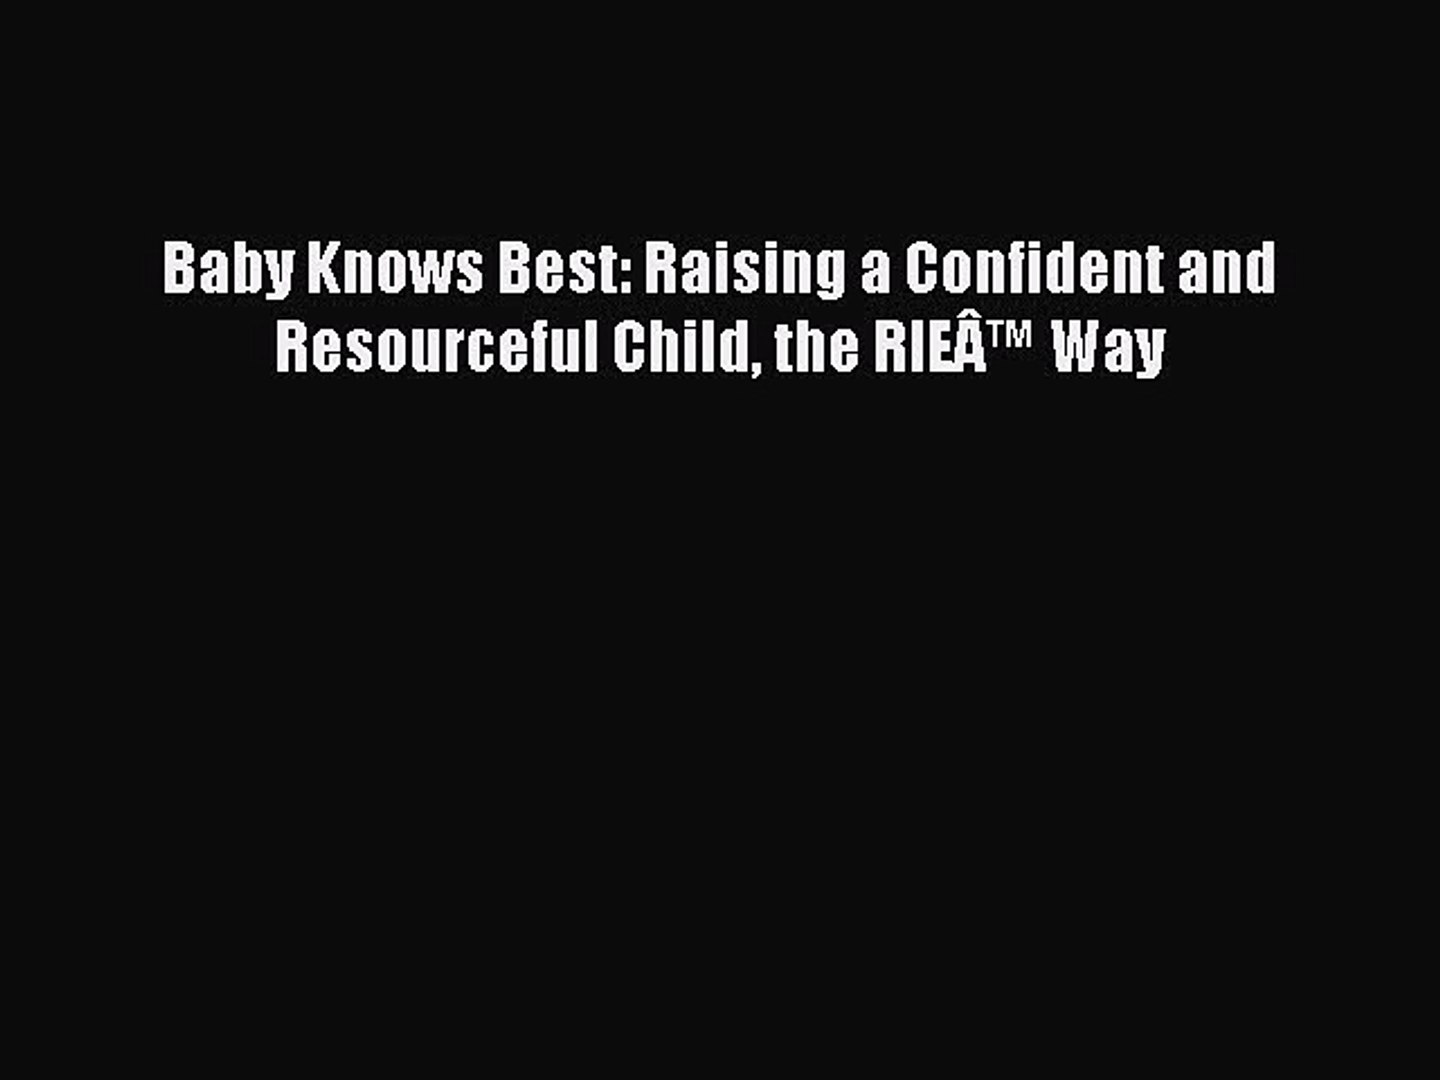 the RIE™ Way Raising a Confident and Resourceful Child Baby Knows Best